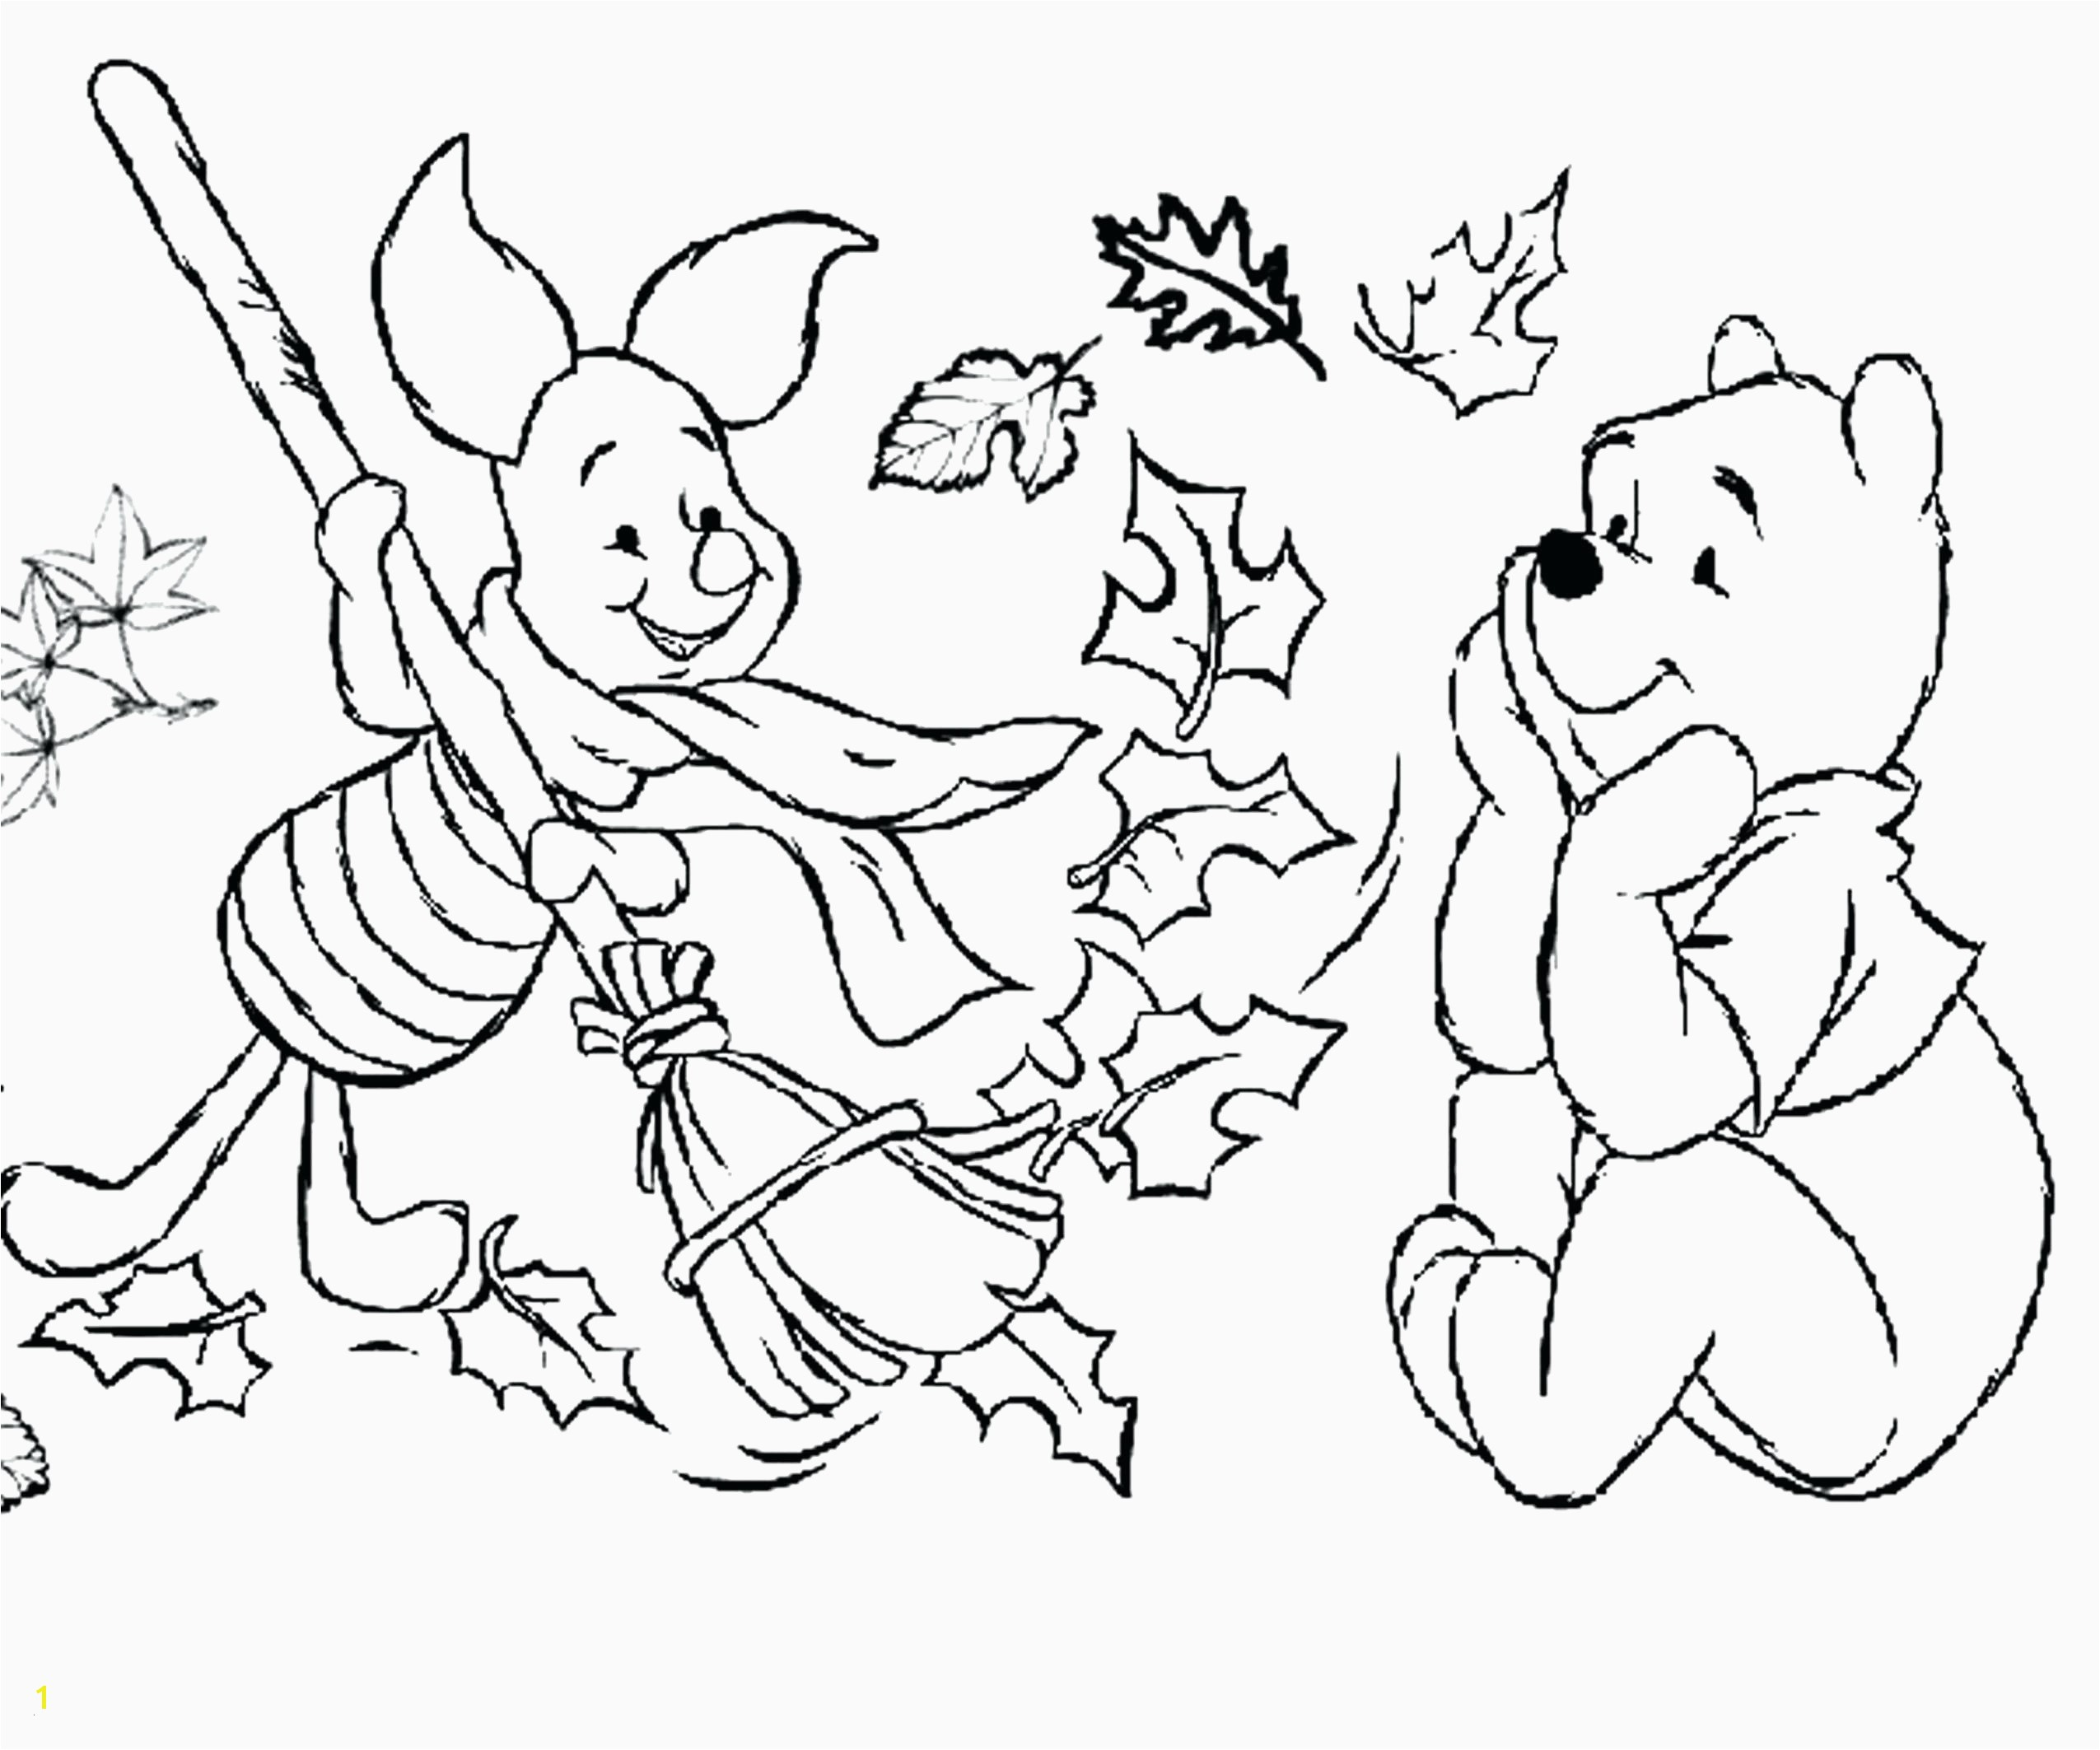 Great Pumpkin Coloring Pages Coloring Pages for Children Great Preschool Fall Coloring Pages 0d